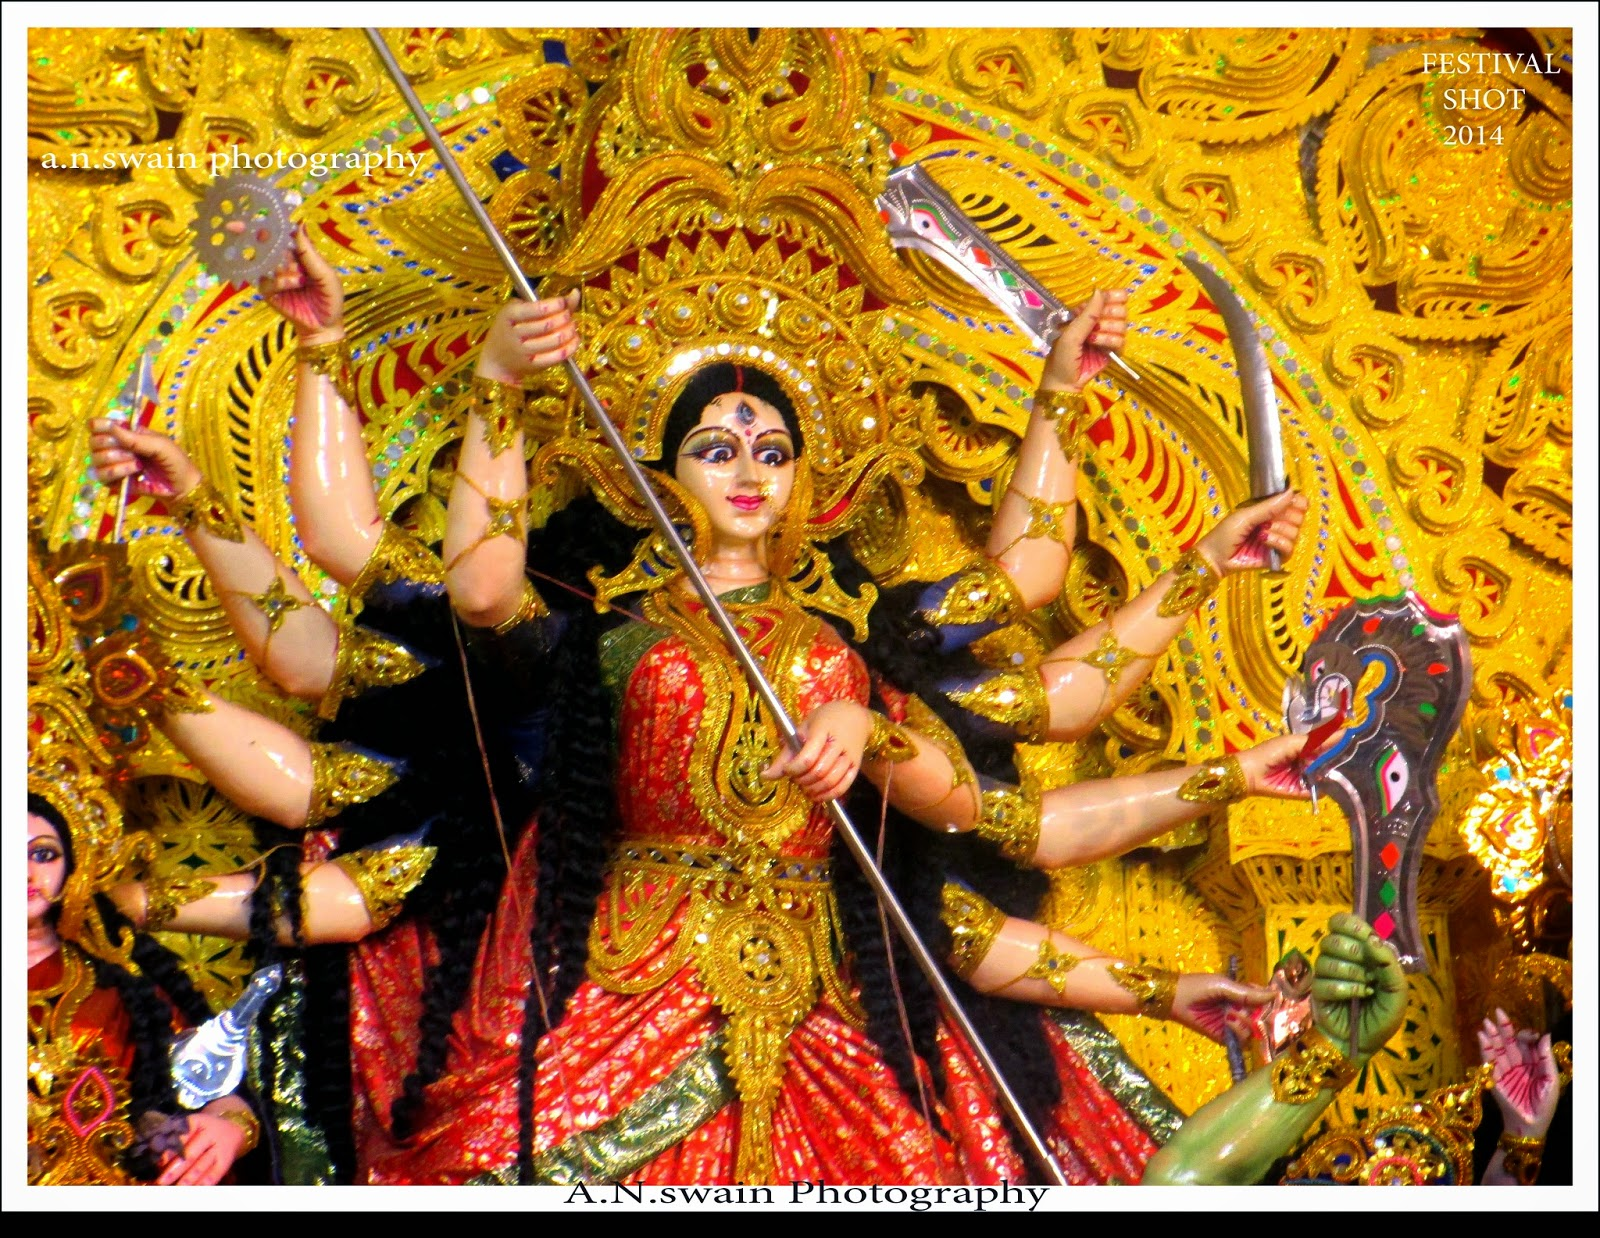 essay durga puja english Durga puja in calcutta [illustration by shiju george] durga puja is the biggest festival in bengal we celebrate this puja very nicely in our city we look forward to durga puja every year it is a joyous occasion for all of us.